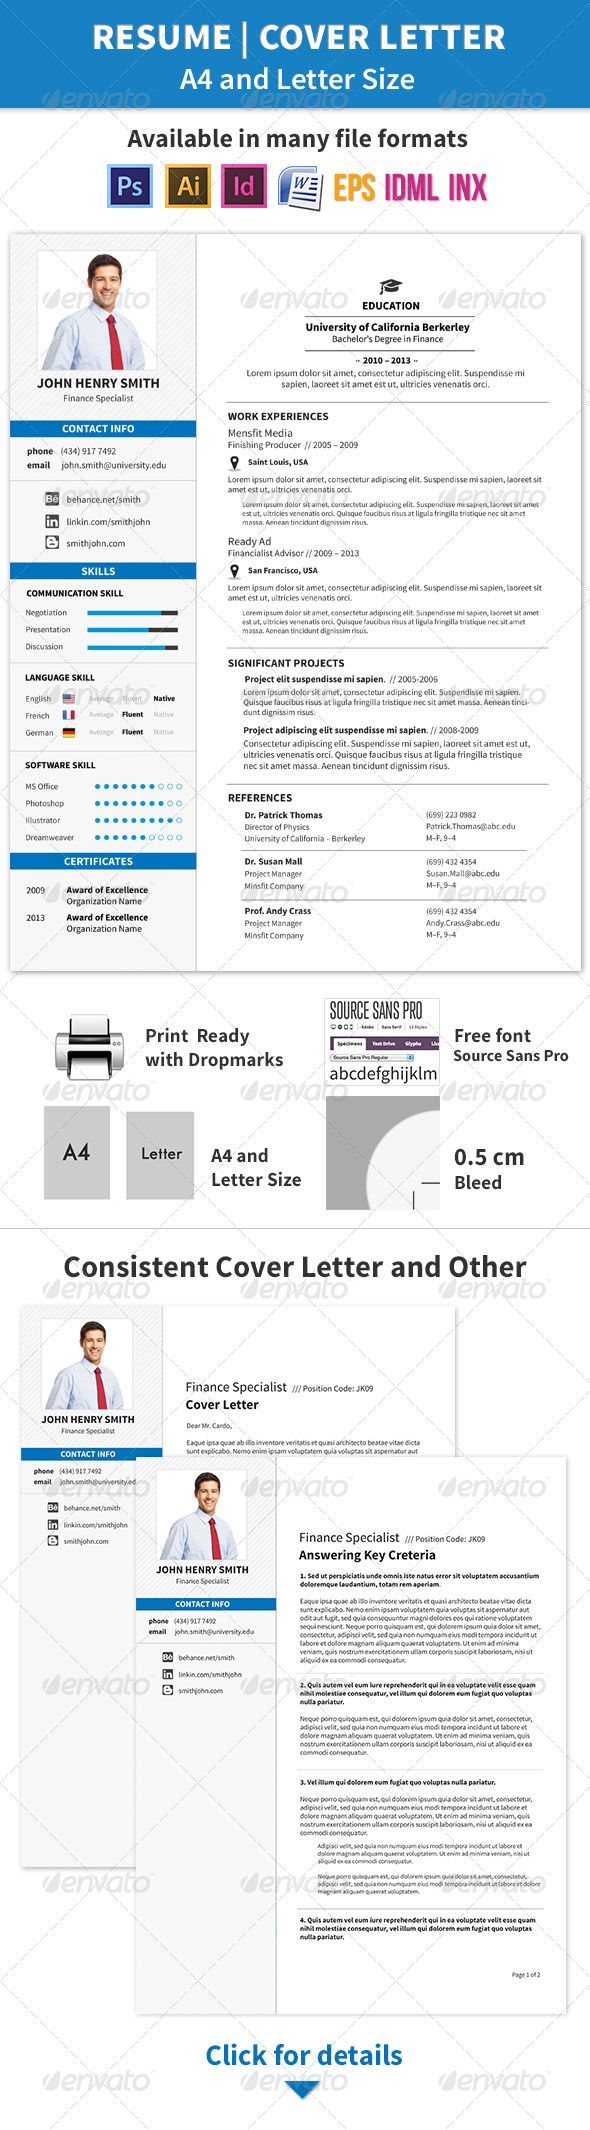 resume and cover letter a4 and letter size  graphicriver